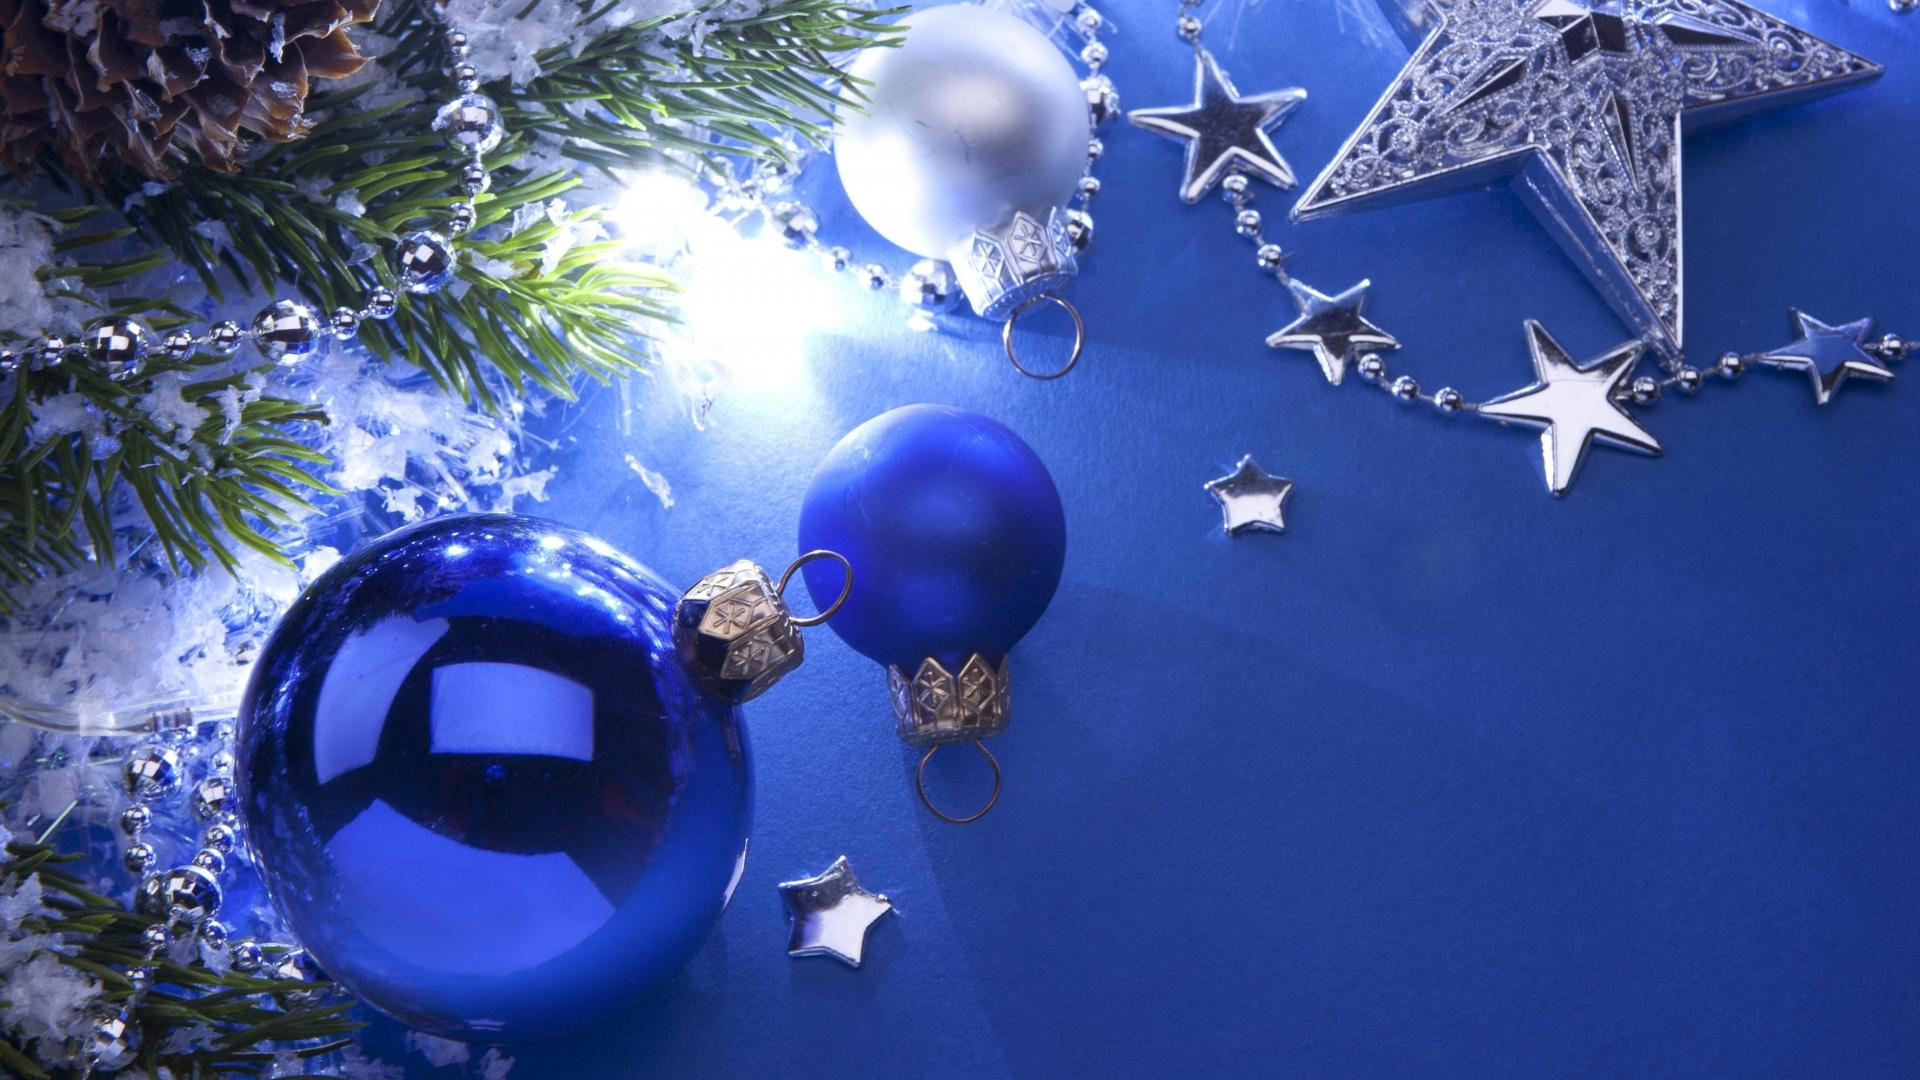 Blue Christmas Background Powerpoint Backgrounds For Free Powerpoint Templates